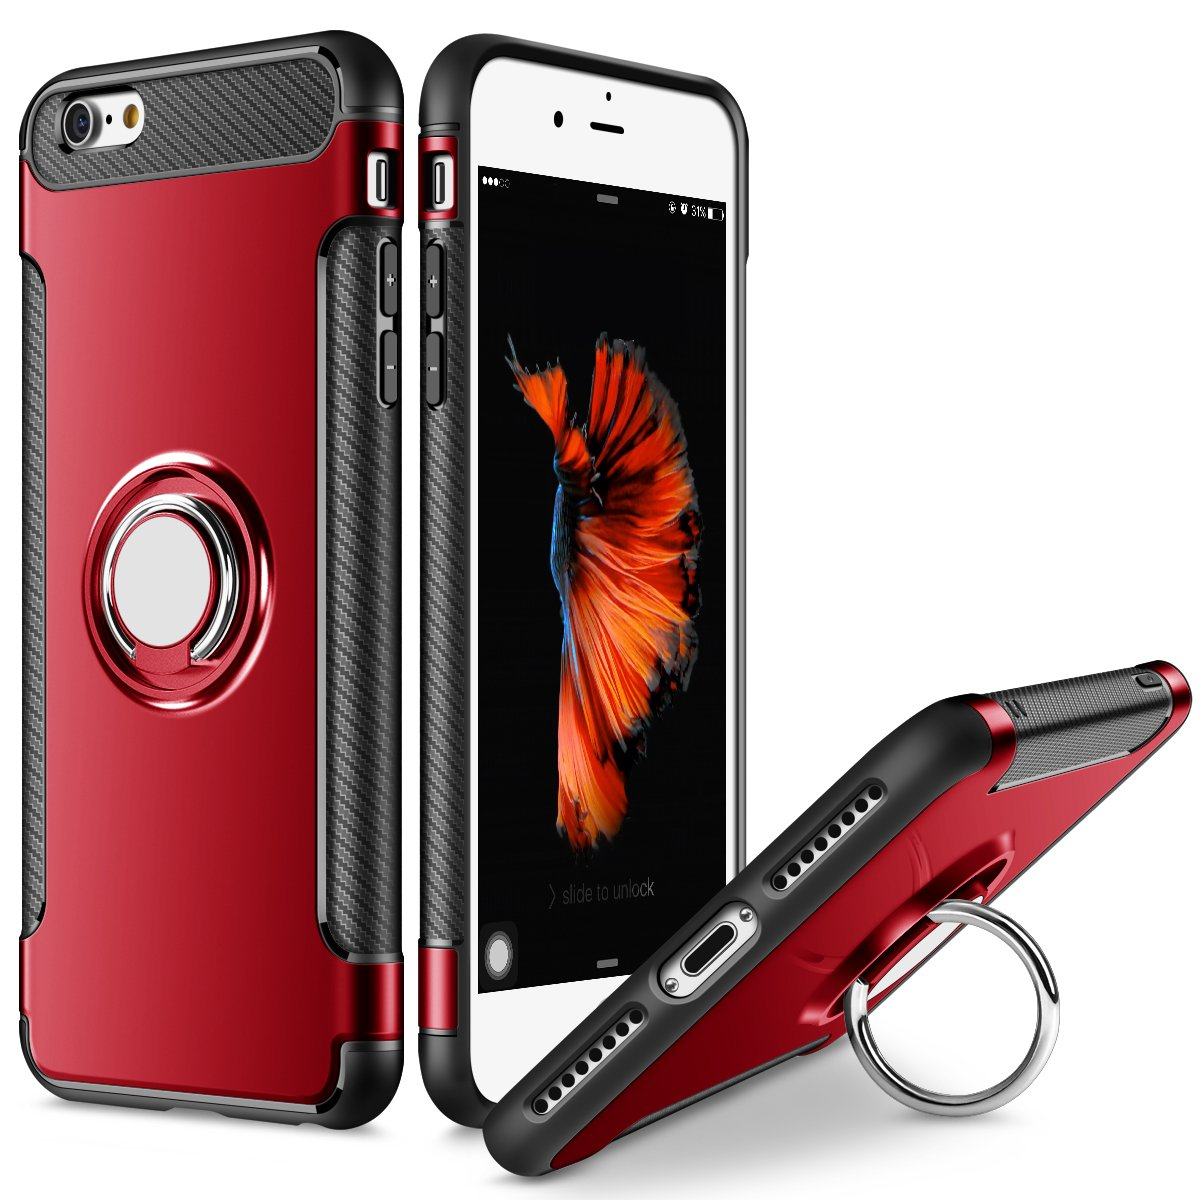 SAMONPOW Hybrid Slim Fit Dual Layer Armor iPhone 7 Plus Case Shock Absorption Rugged Defence with Ring Holder Kickstand Drop Protection Cover Soft Rubber Bumper Case for iPhone 7 Plus - Red